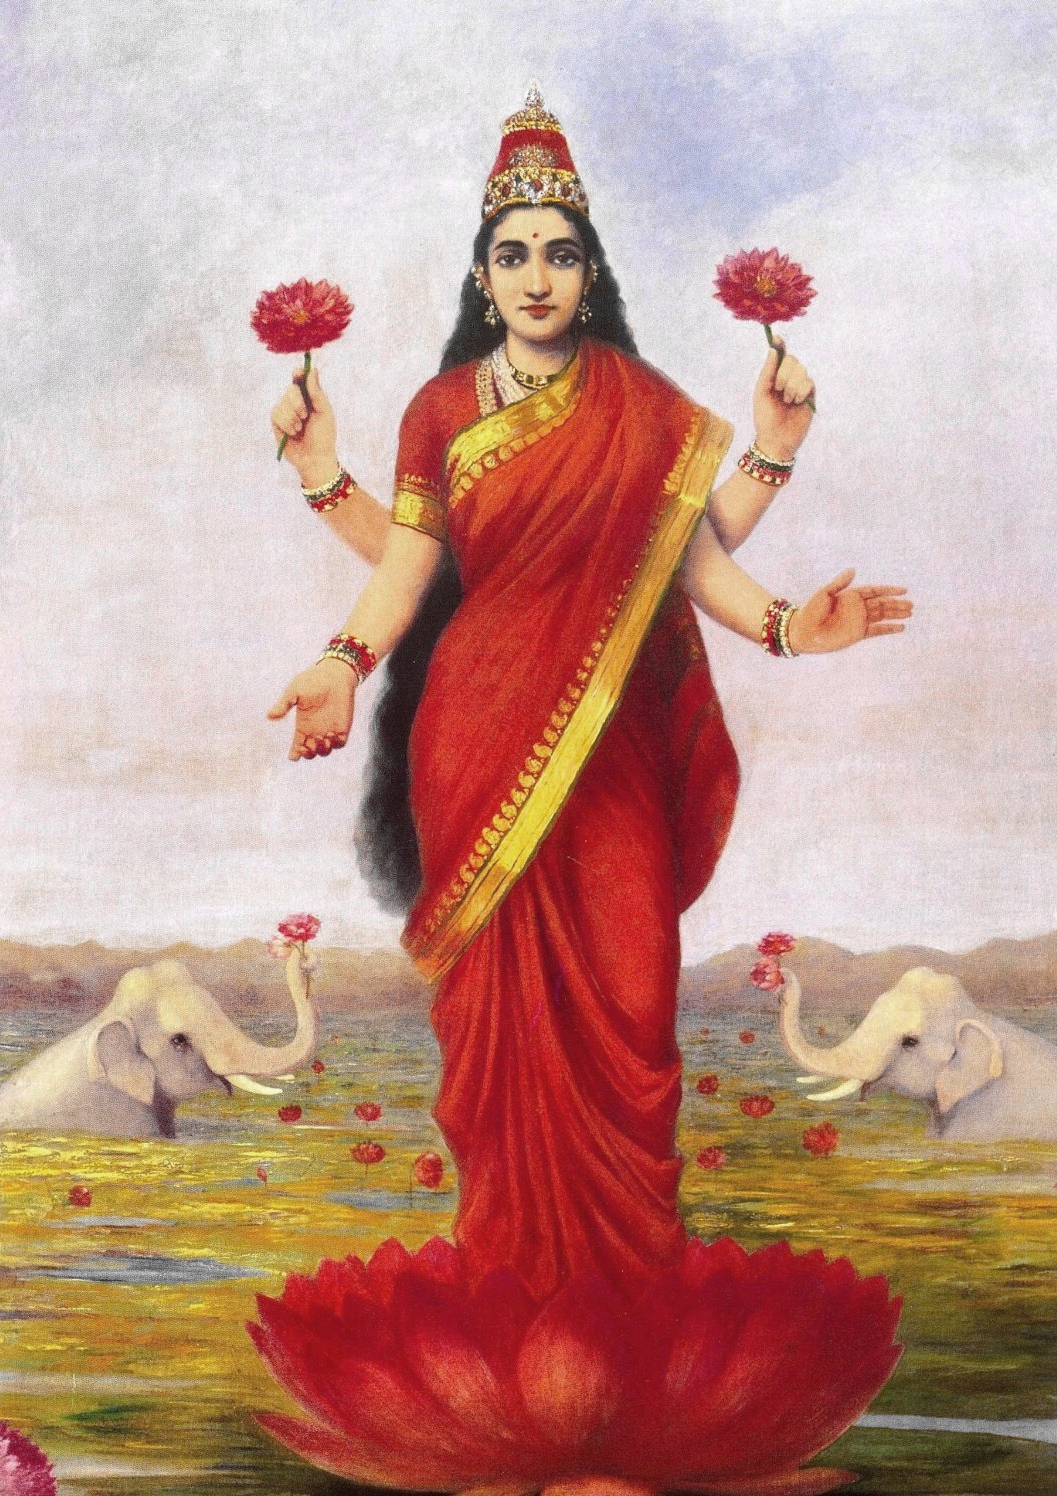 Oil on canvas painting pf Goddess Lakshmi by Raja Ravi Varma. Elephants appear on her sides showering her with lotuses.